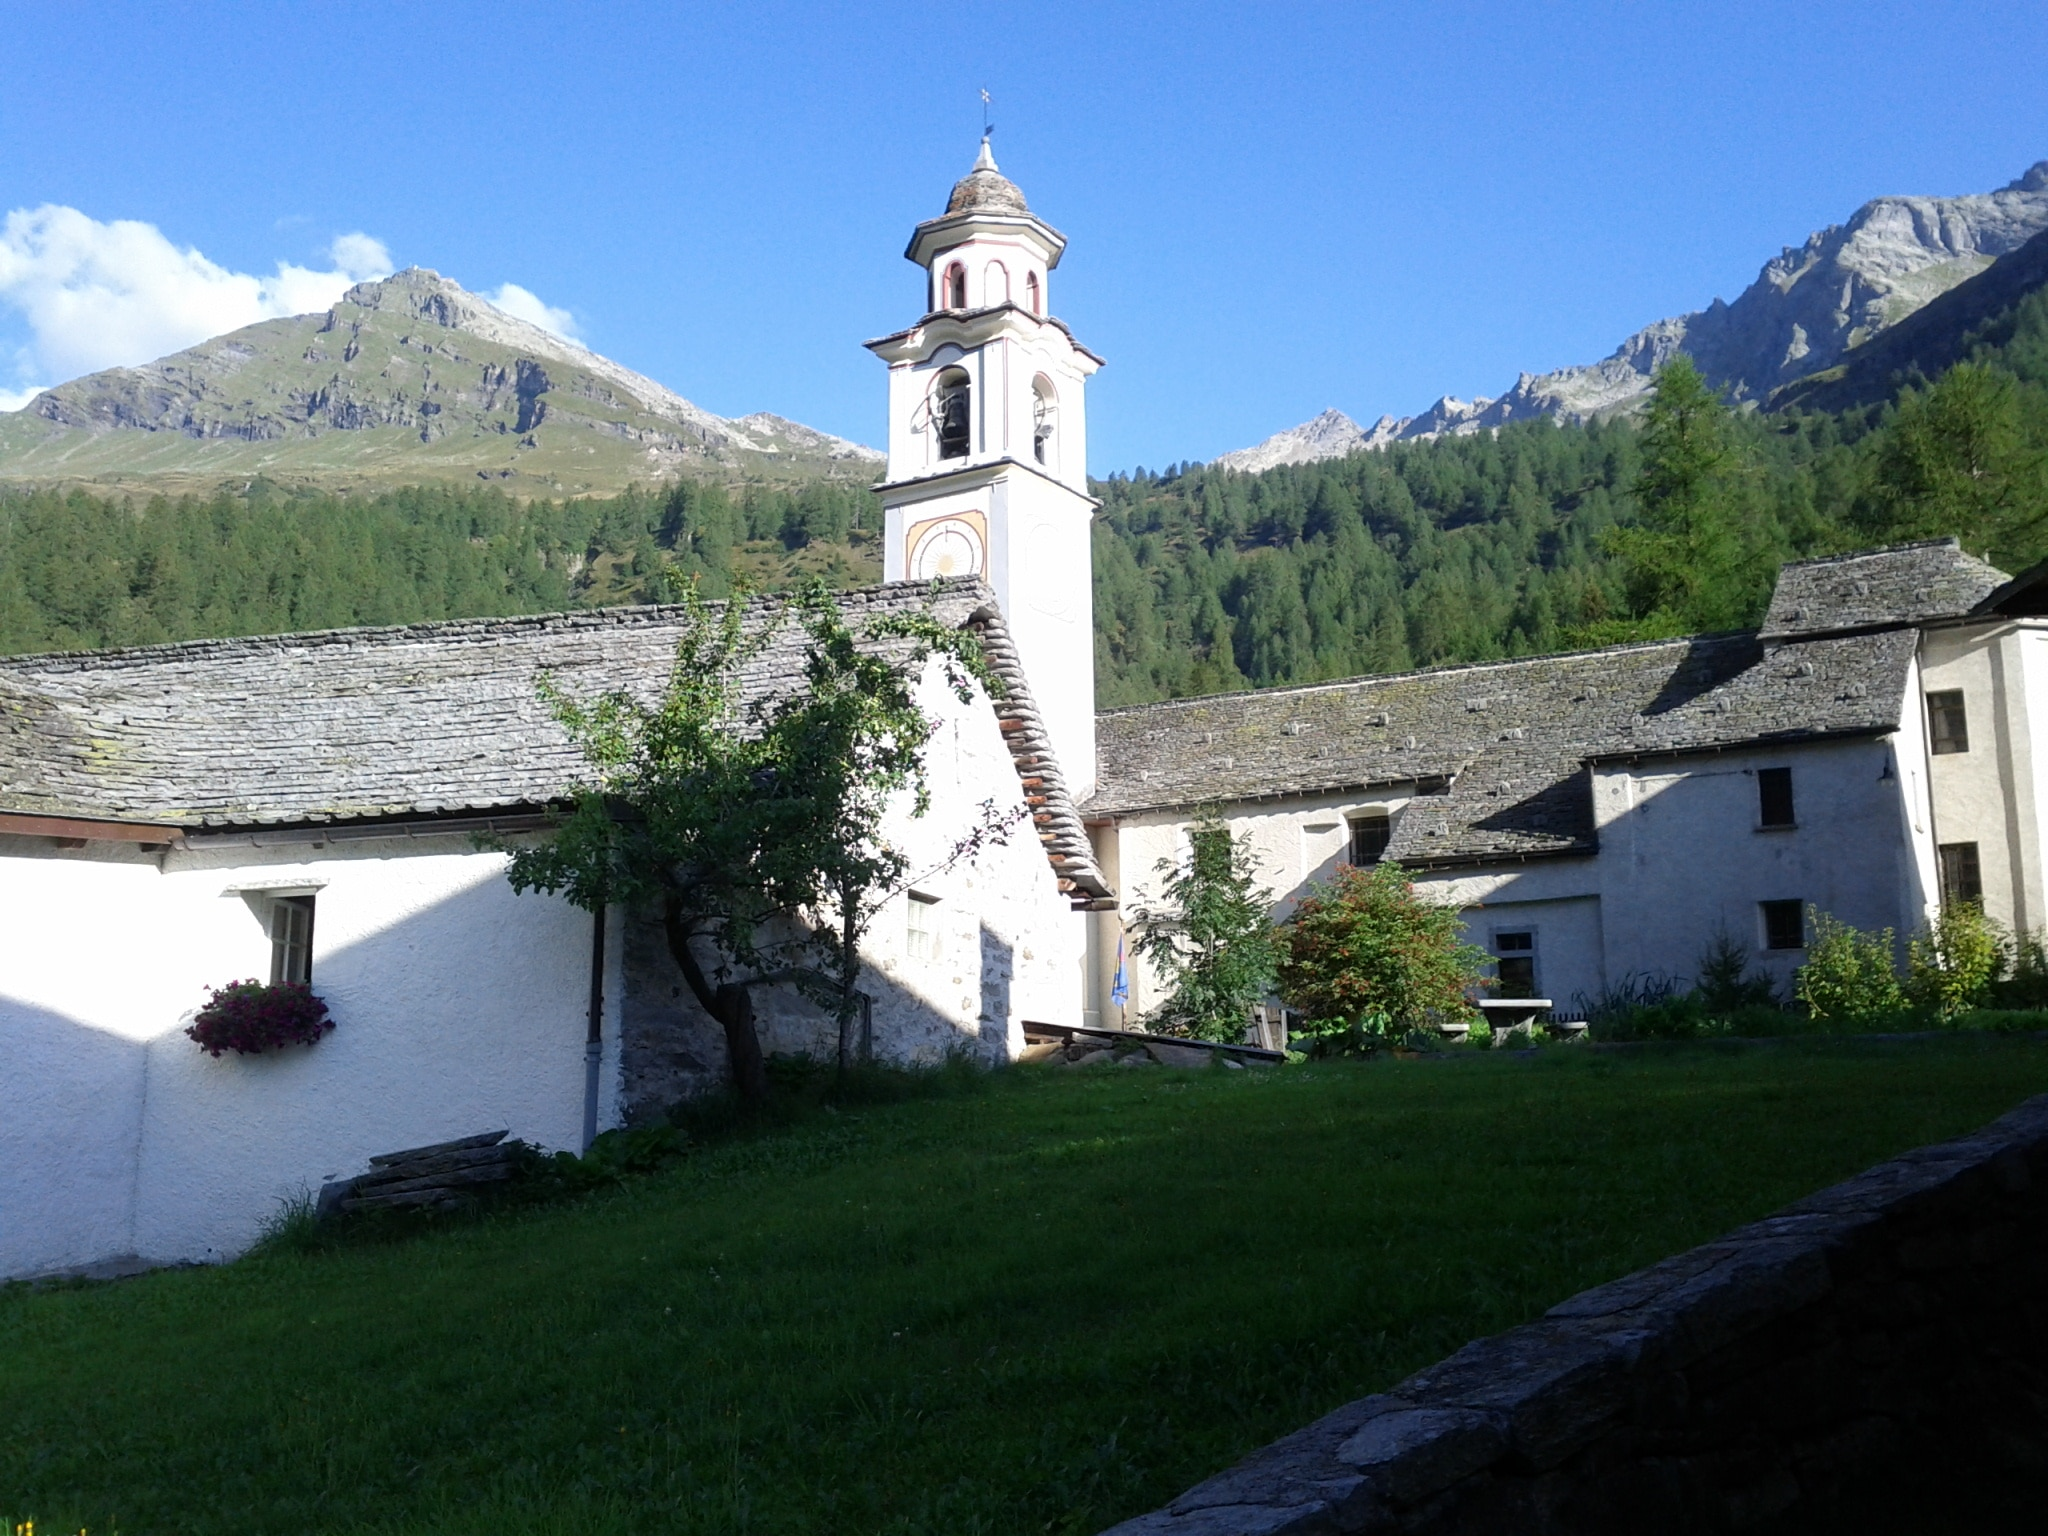 The village is set in an Italian region, but is known as a German-speaking enclave.